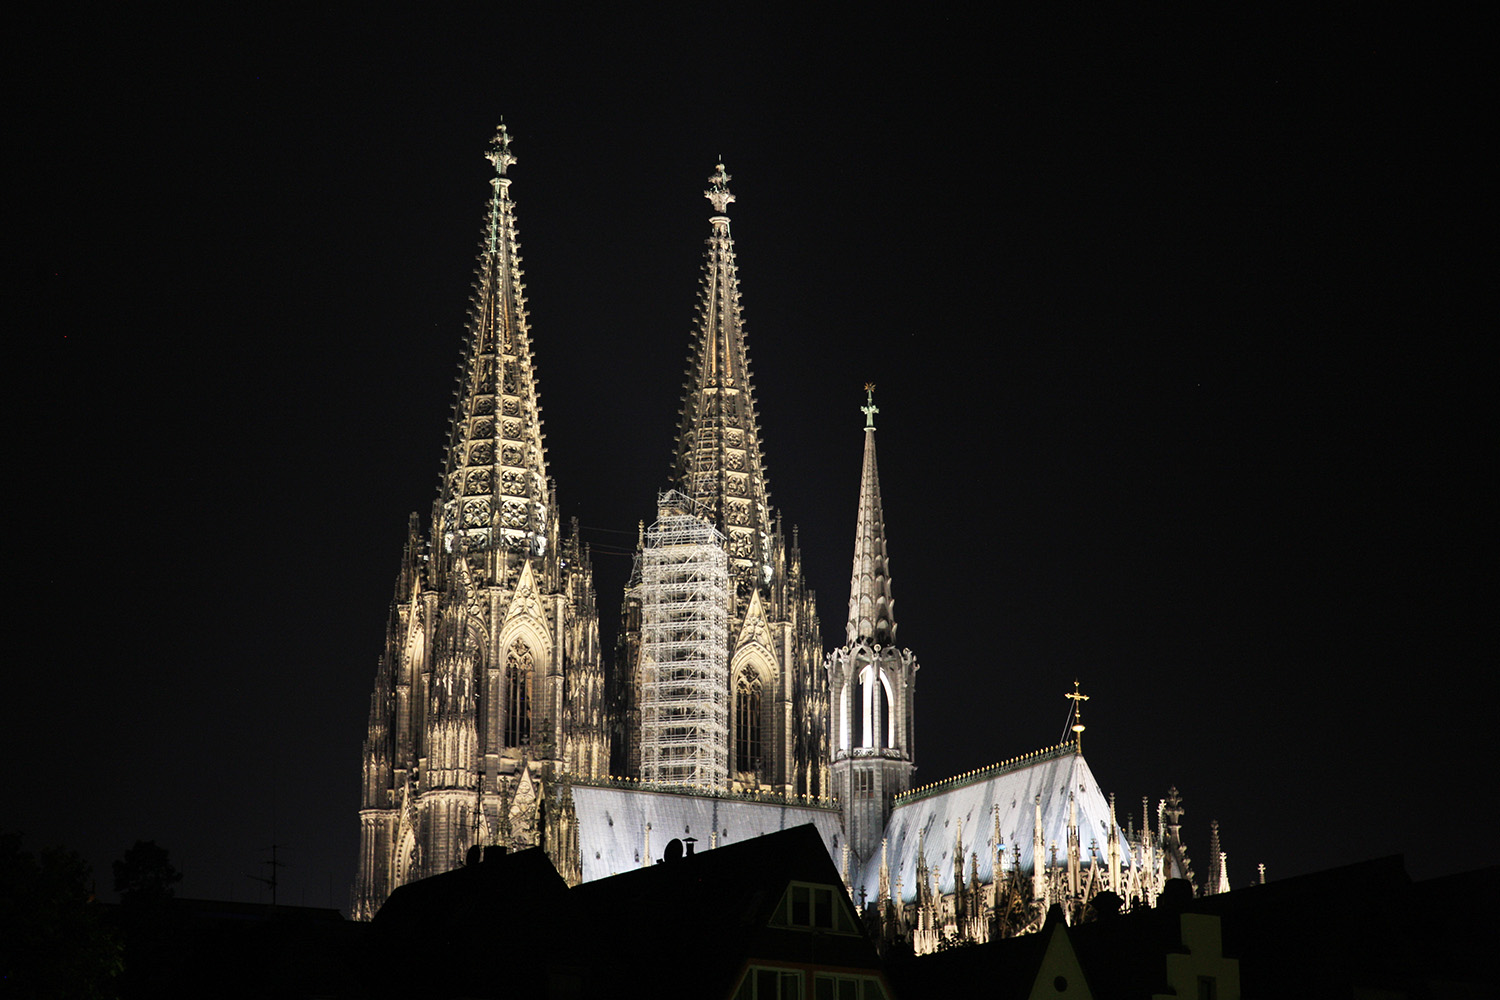 The Cologne Cathedral